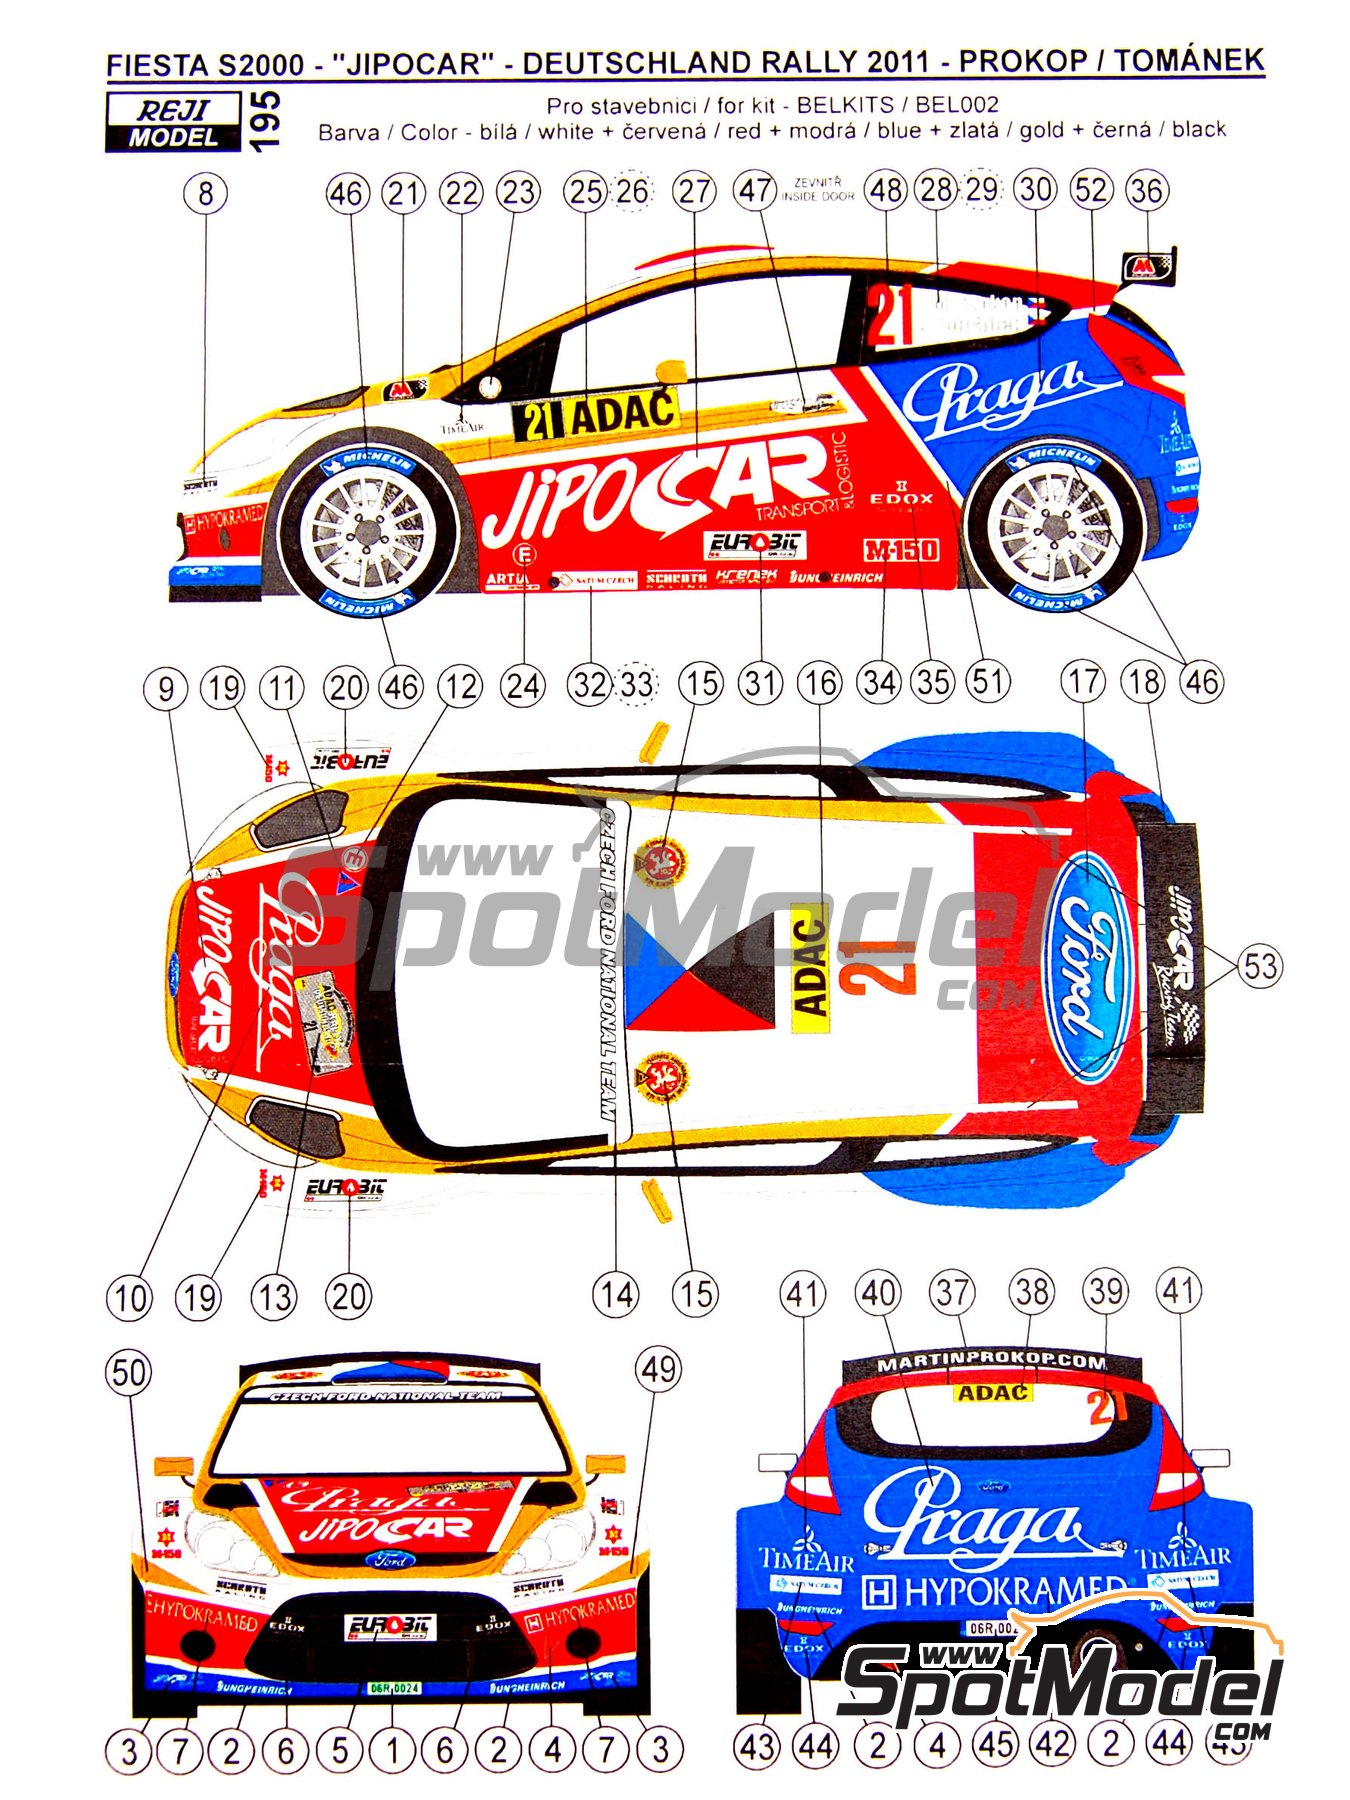 Ford Fiesta S2000 Jipo Car - Rally de Alemania ADAC 2011 | Decoración en escala 1/24 fabricado por Reji Model (ref. REJI-195) image